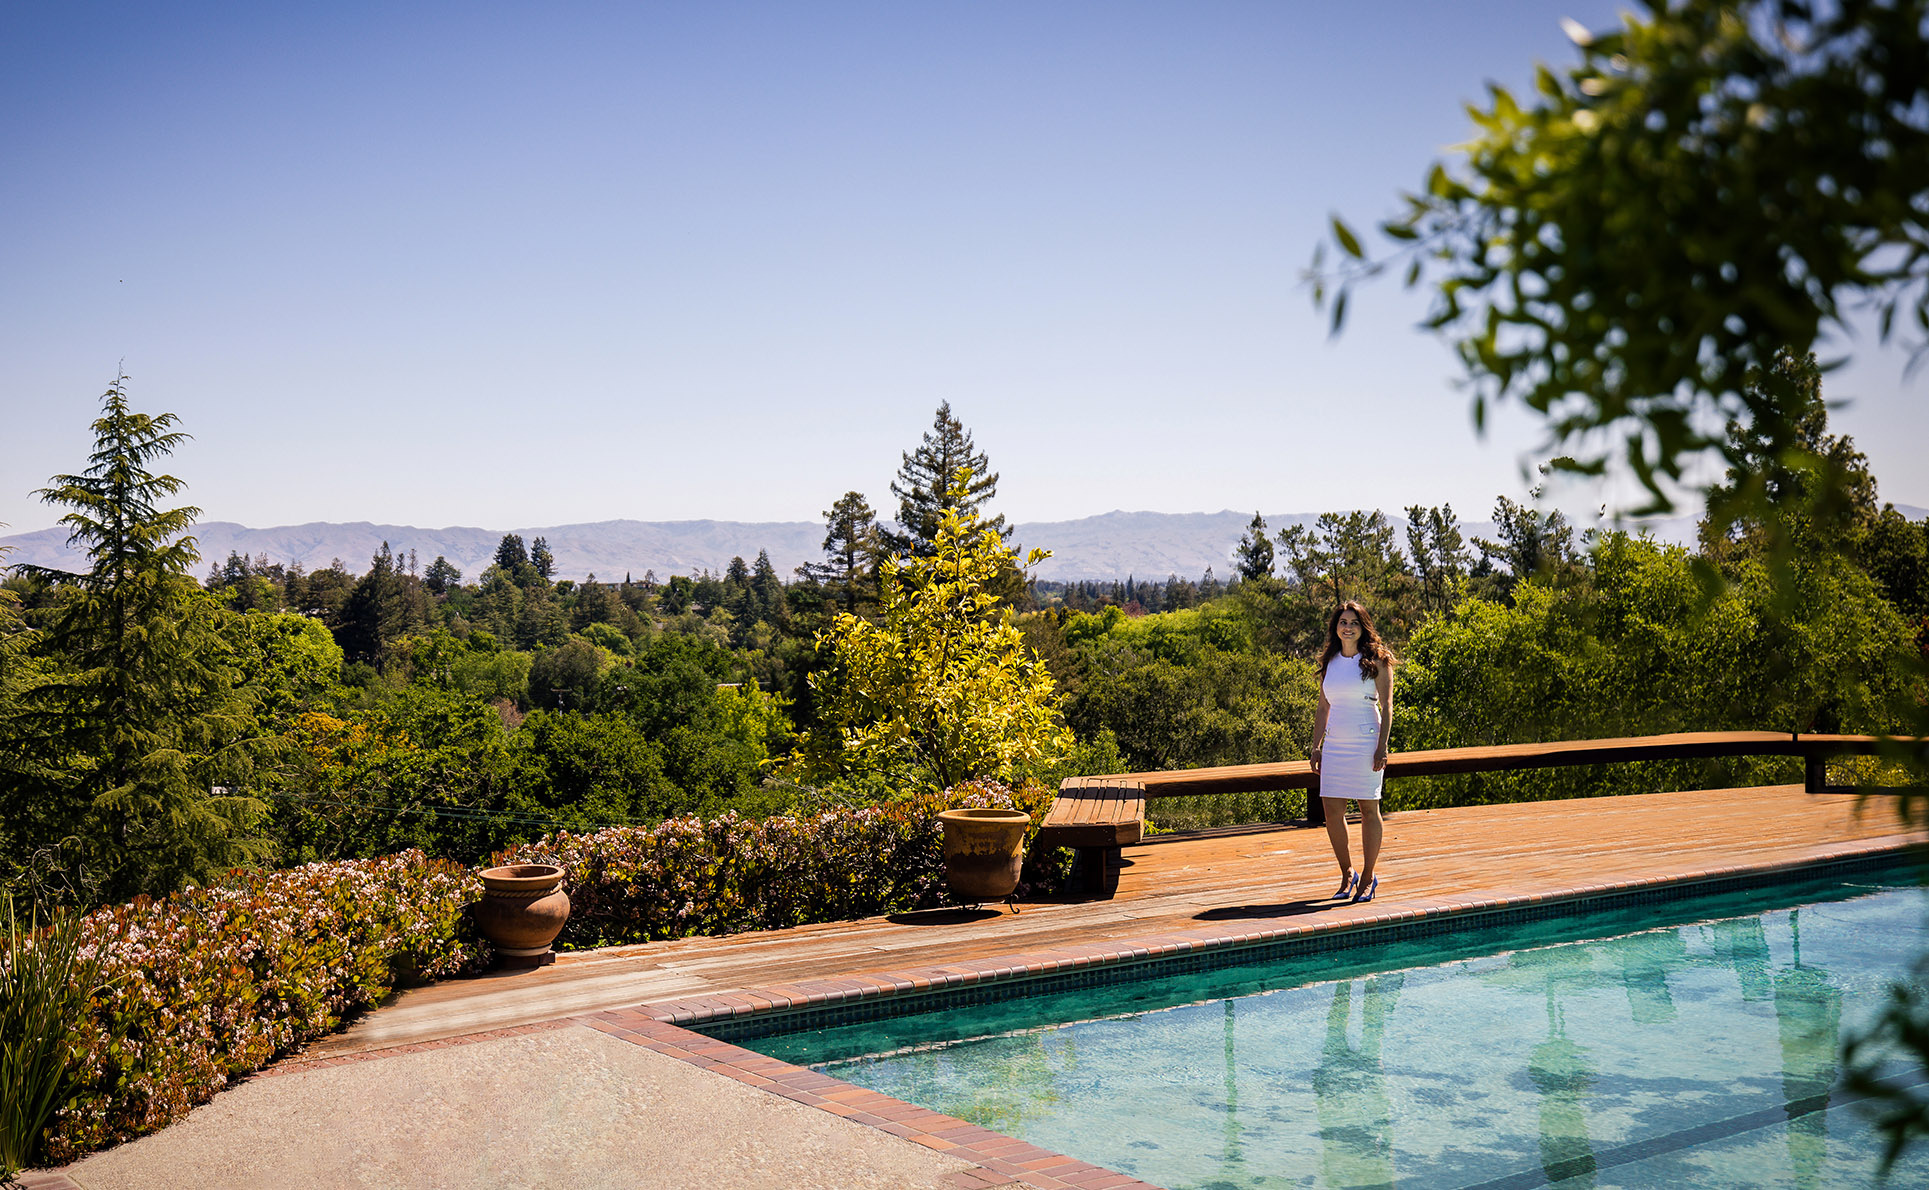 Buying a Home in Silicon Valley